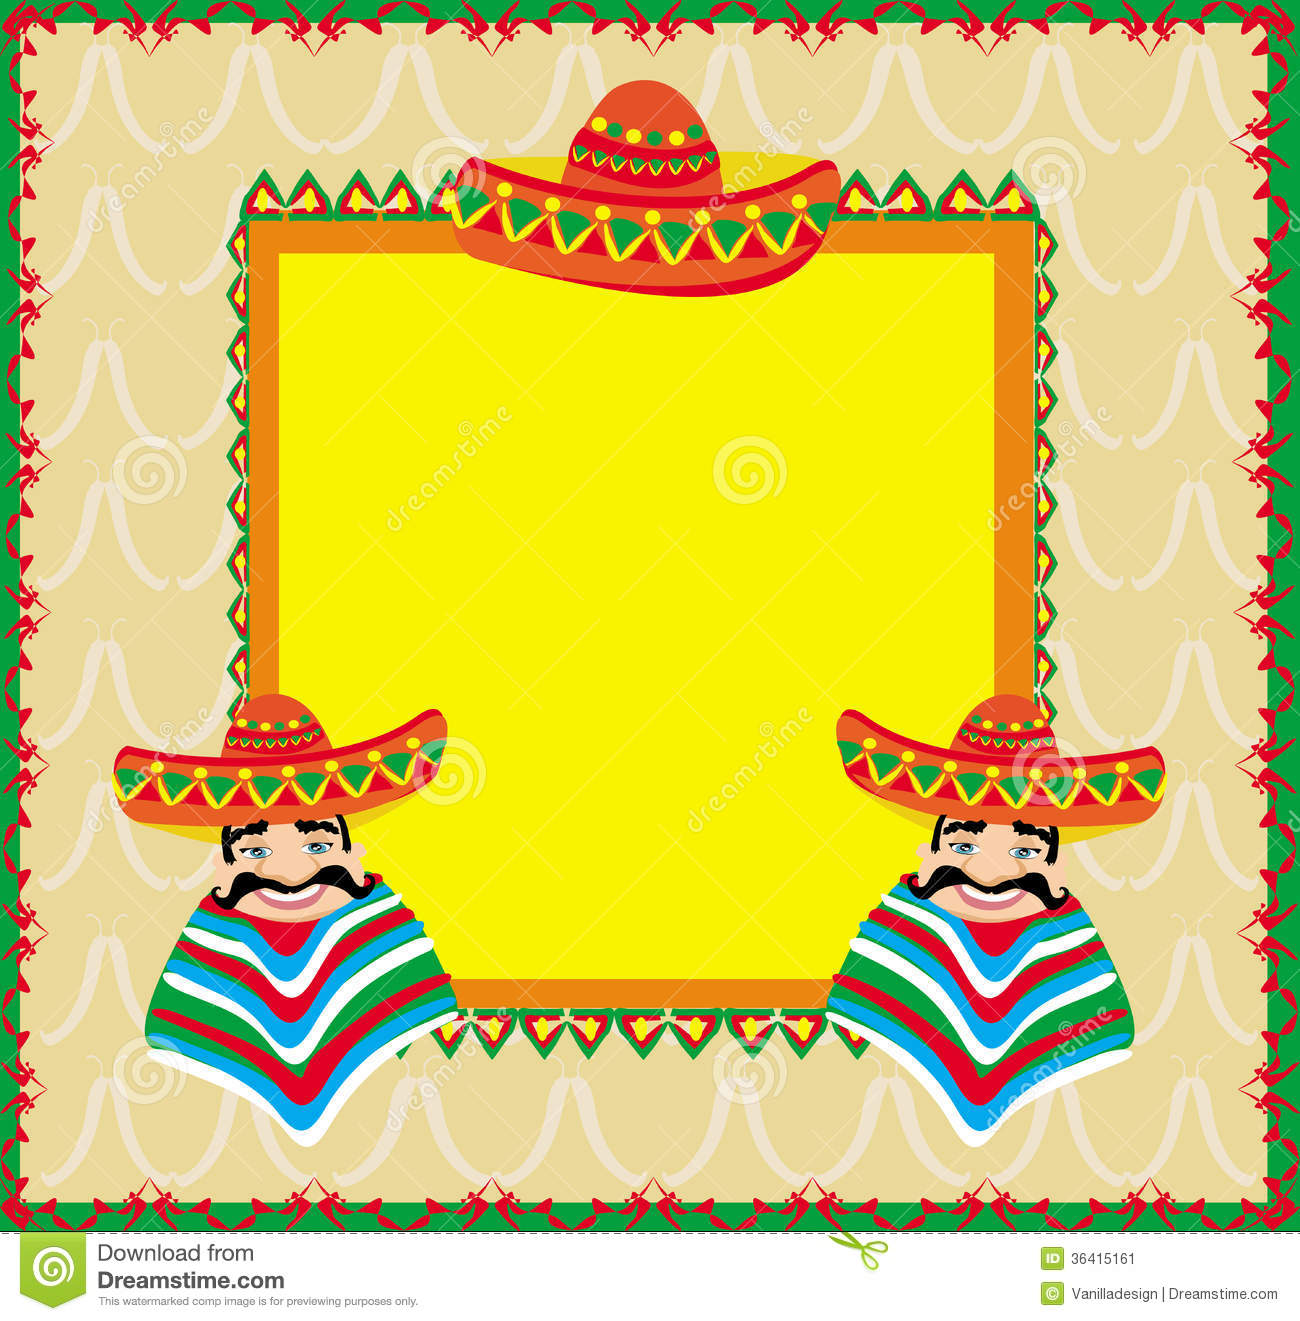 mexican frame with man in sombrero - Mexican Frame